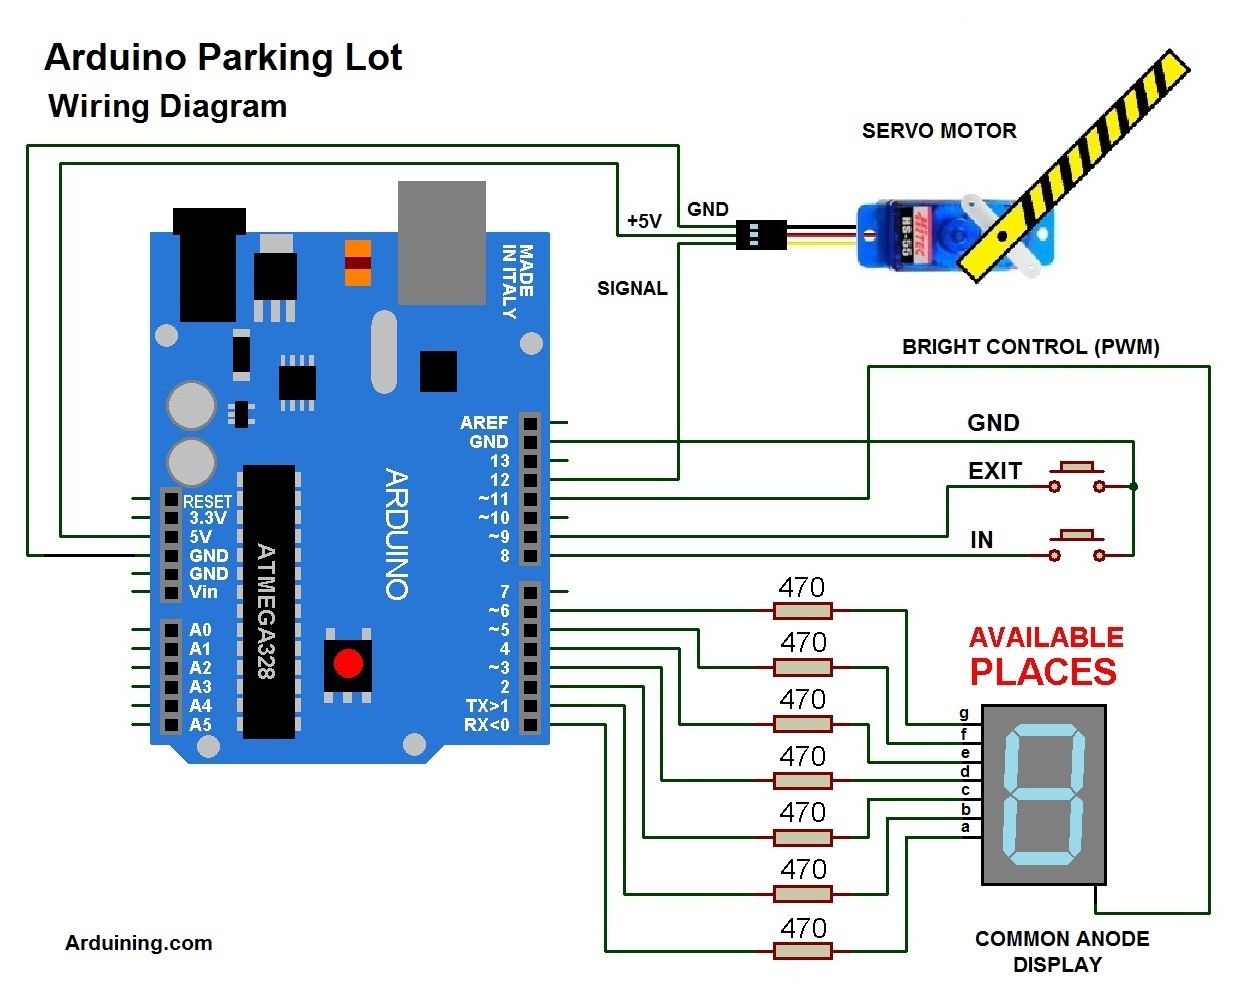 parkinglotwd arduino parking lot ( filled ) arduining arduino wire diagram maker at creativeand.co